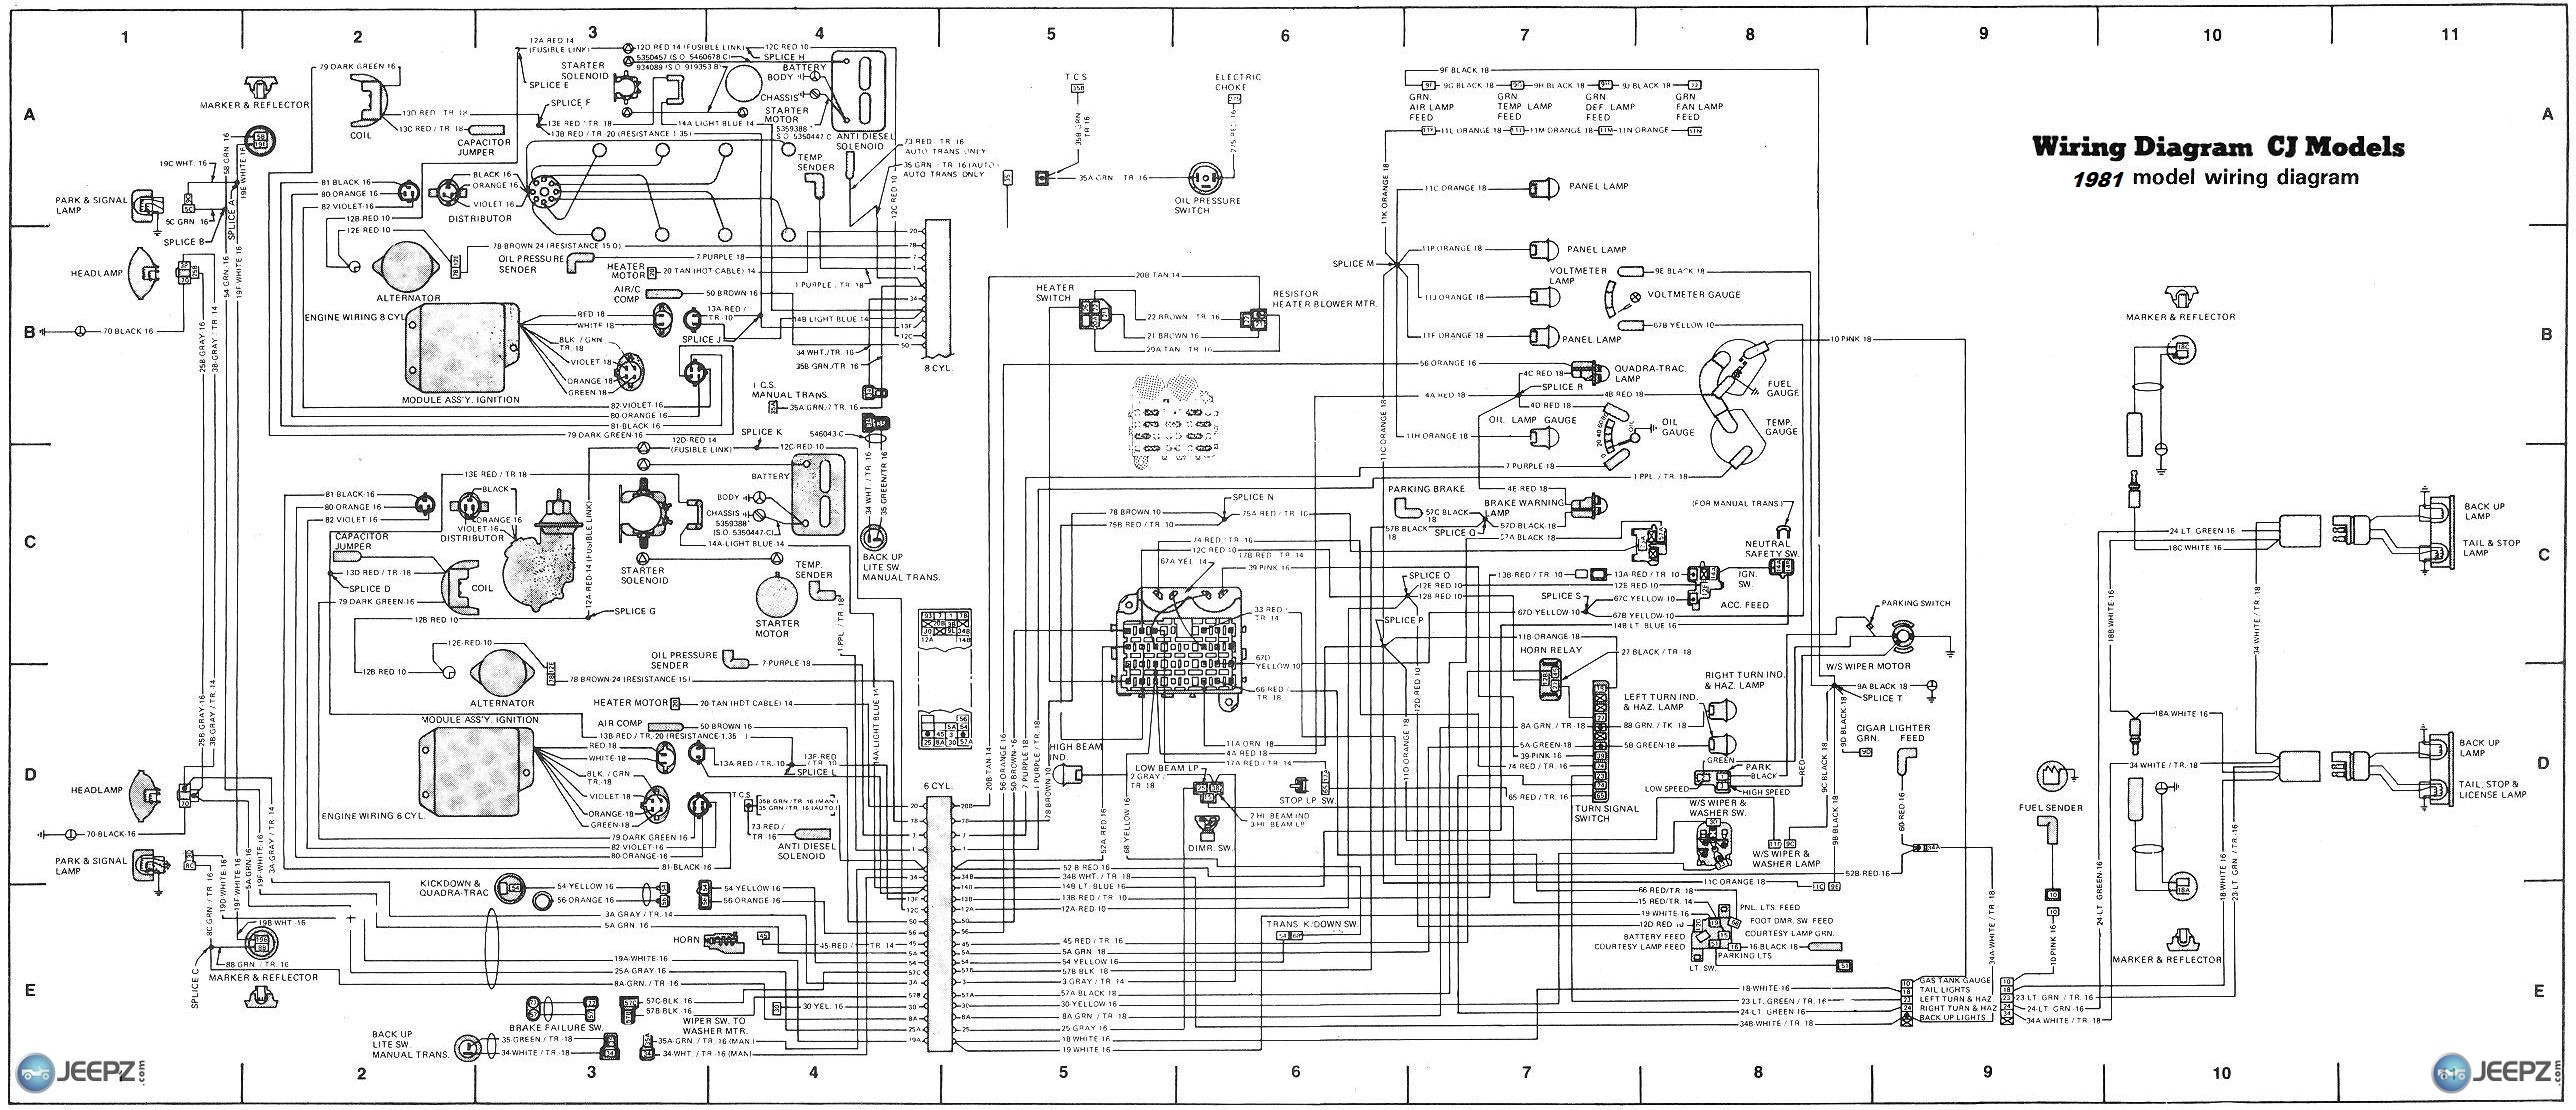 Wiring Diagram For Cj8